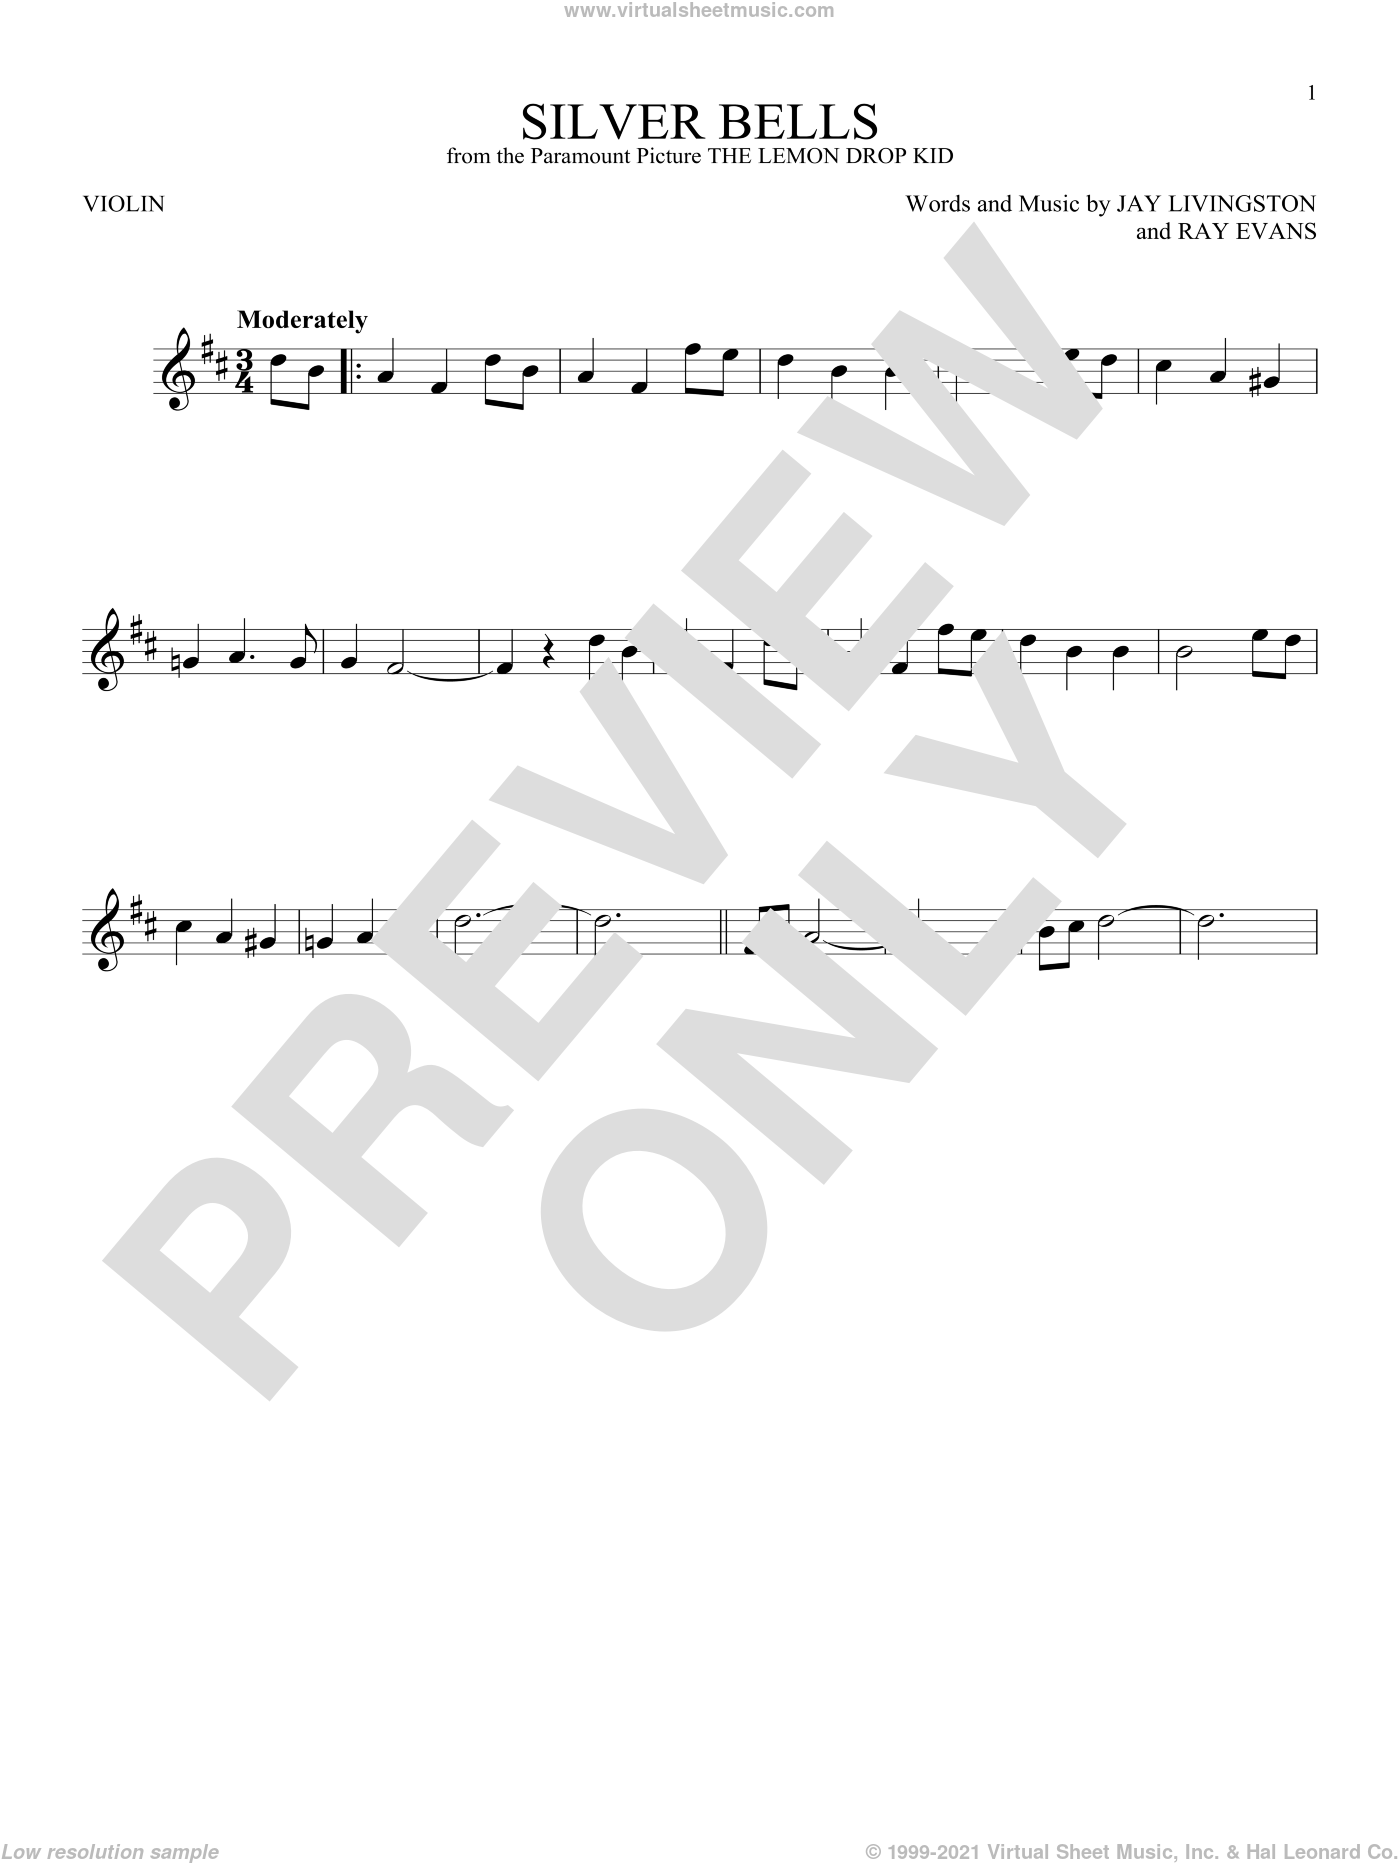 Silver Bells sheet music for violin solo by Jay Livingston, Jay Livingston & Ray Evans and Ray Evans, intermediate skill level